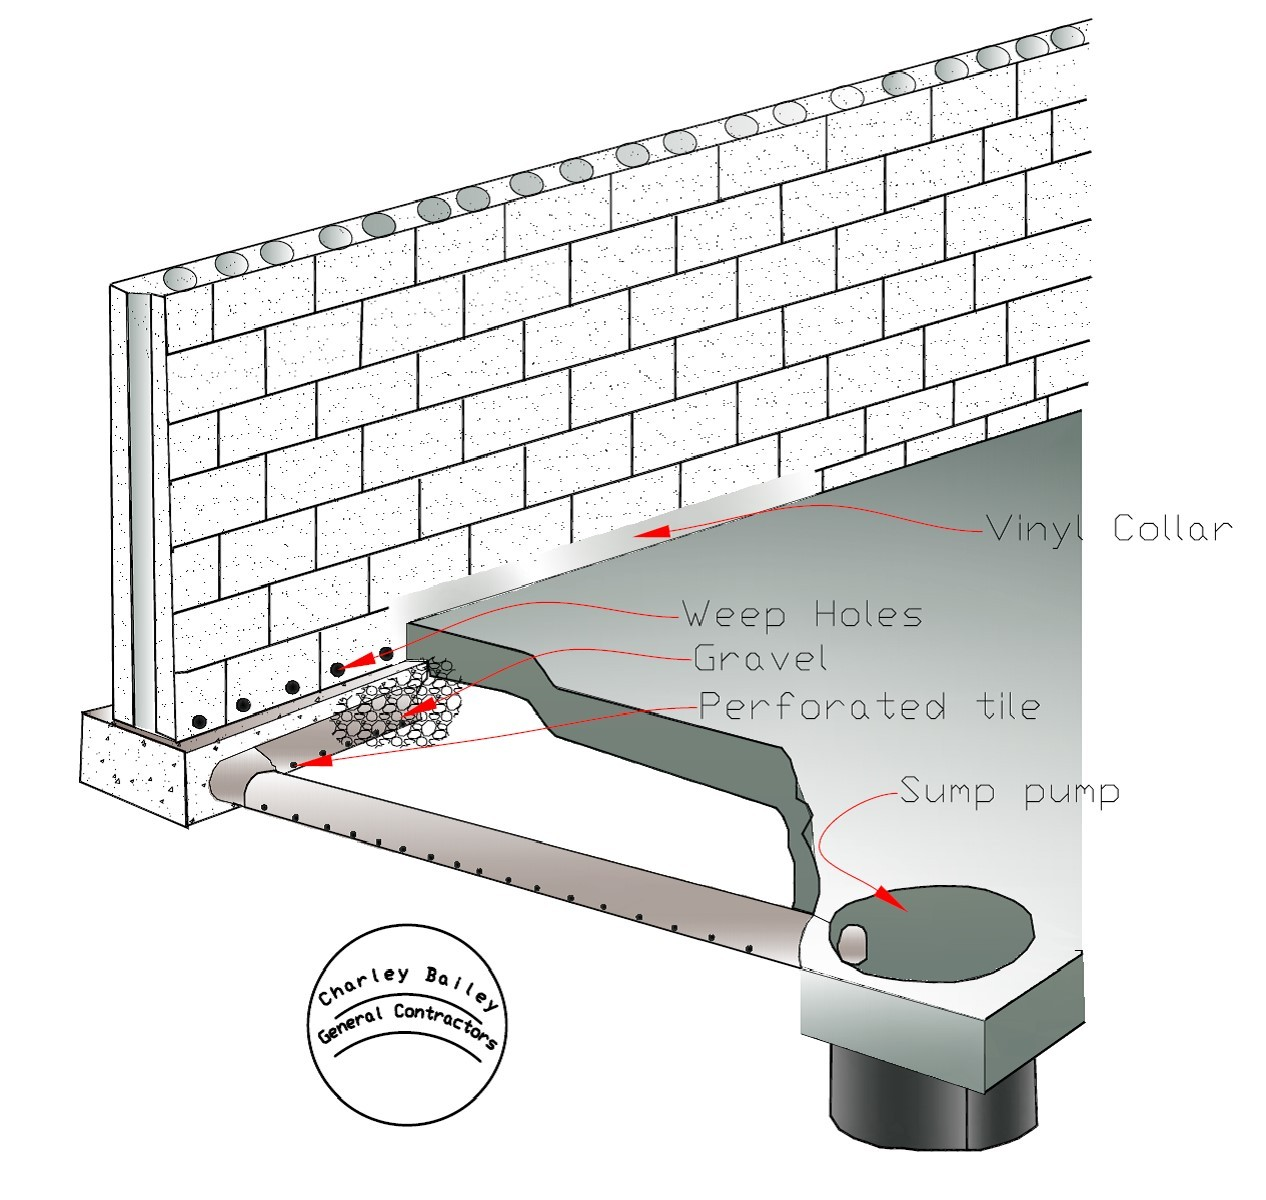 Basement waterproofing drawing by: Charley Bailey General Contractors